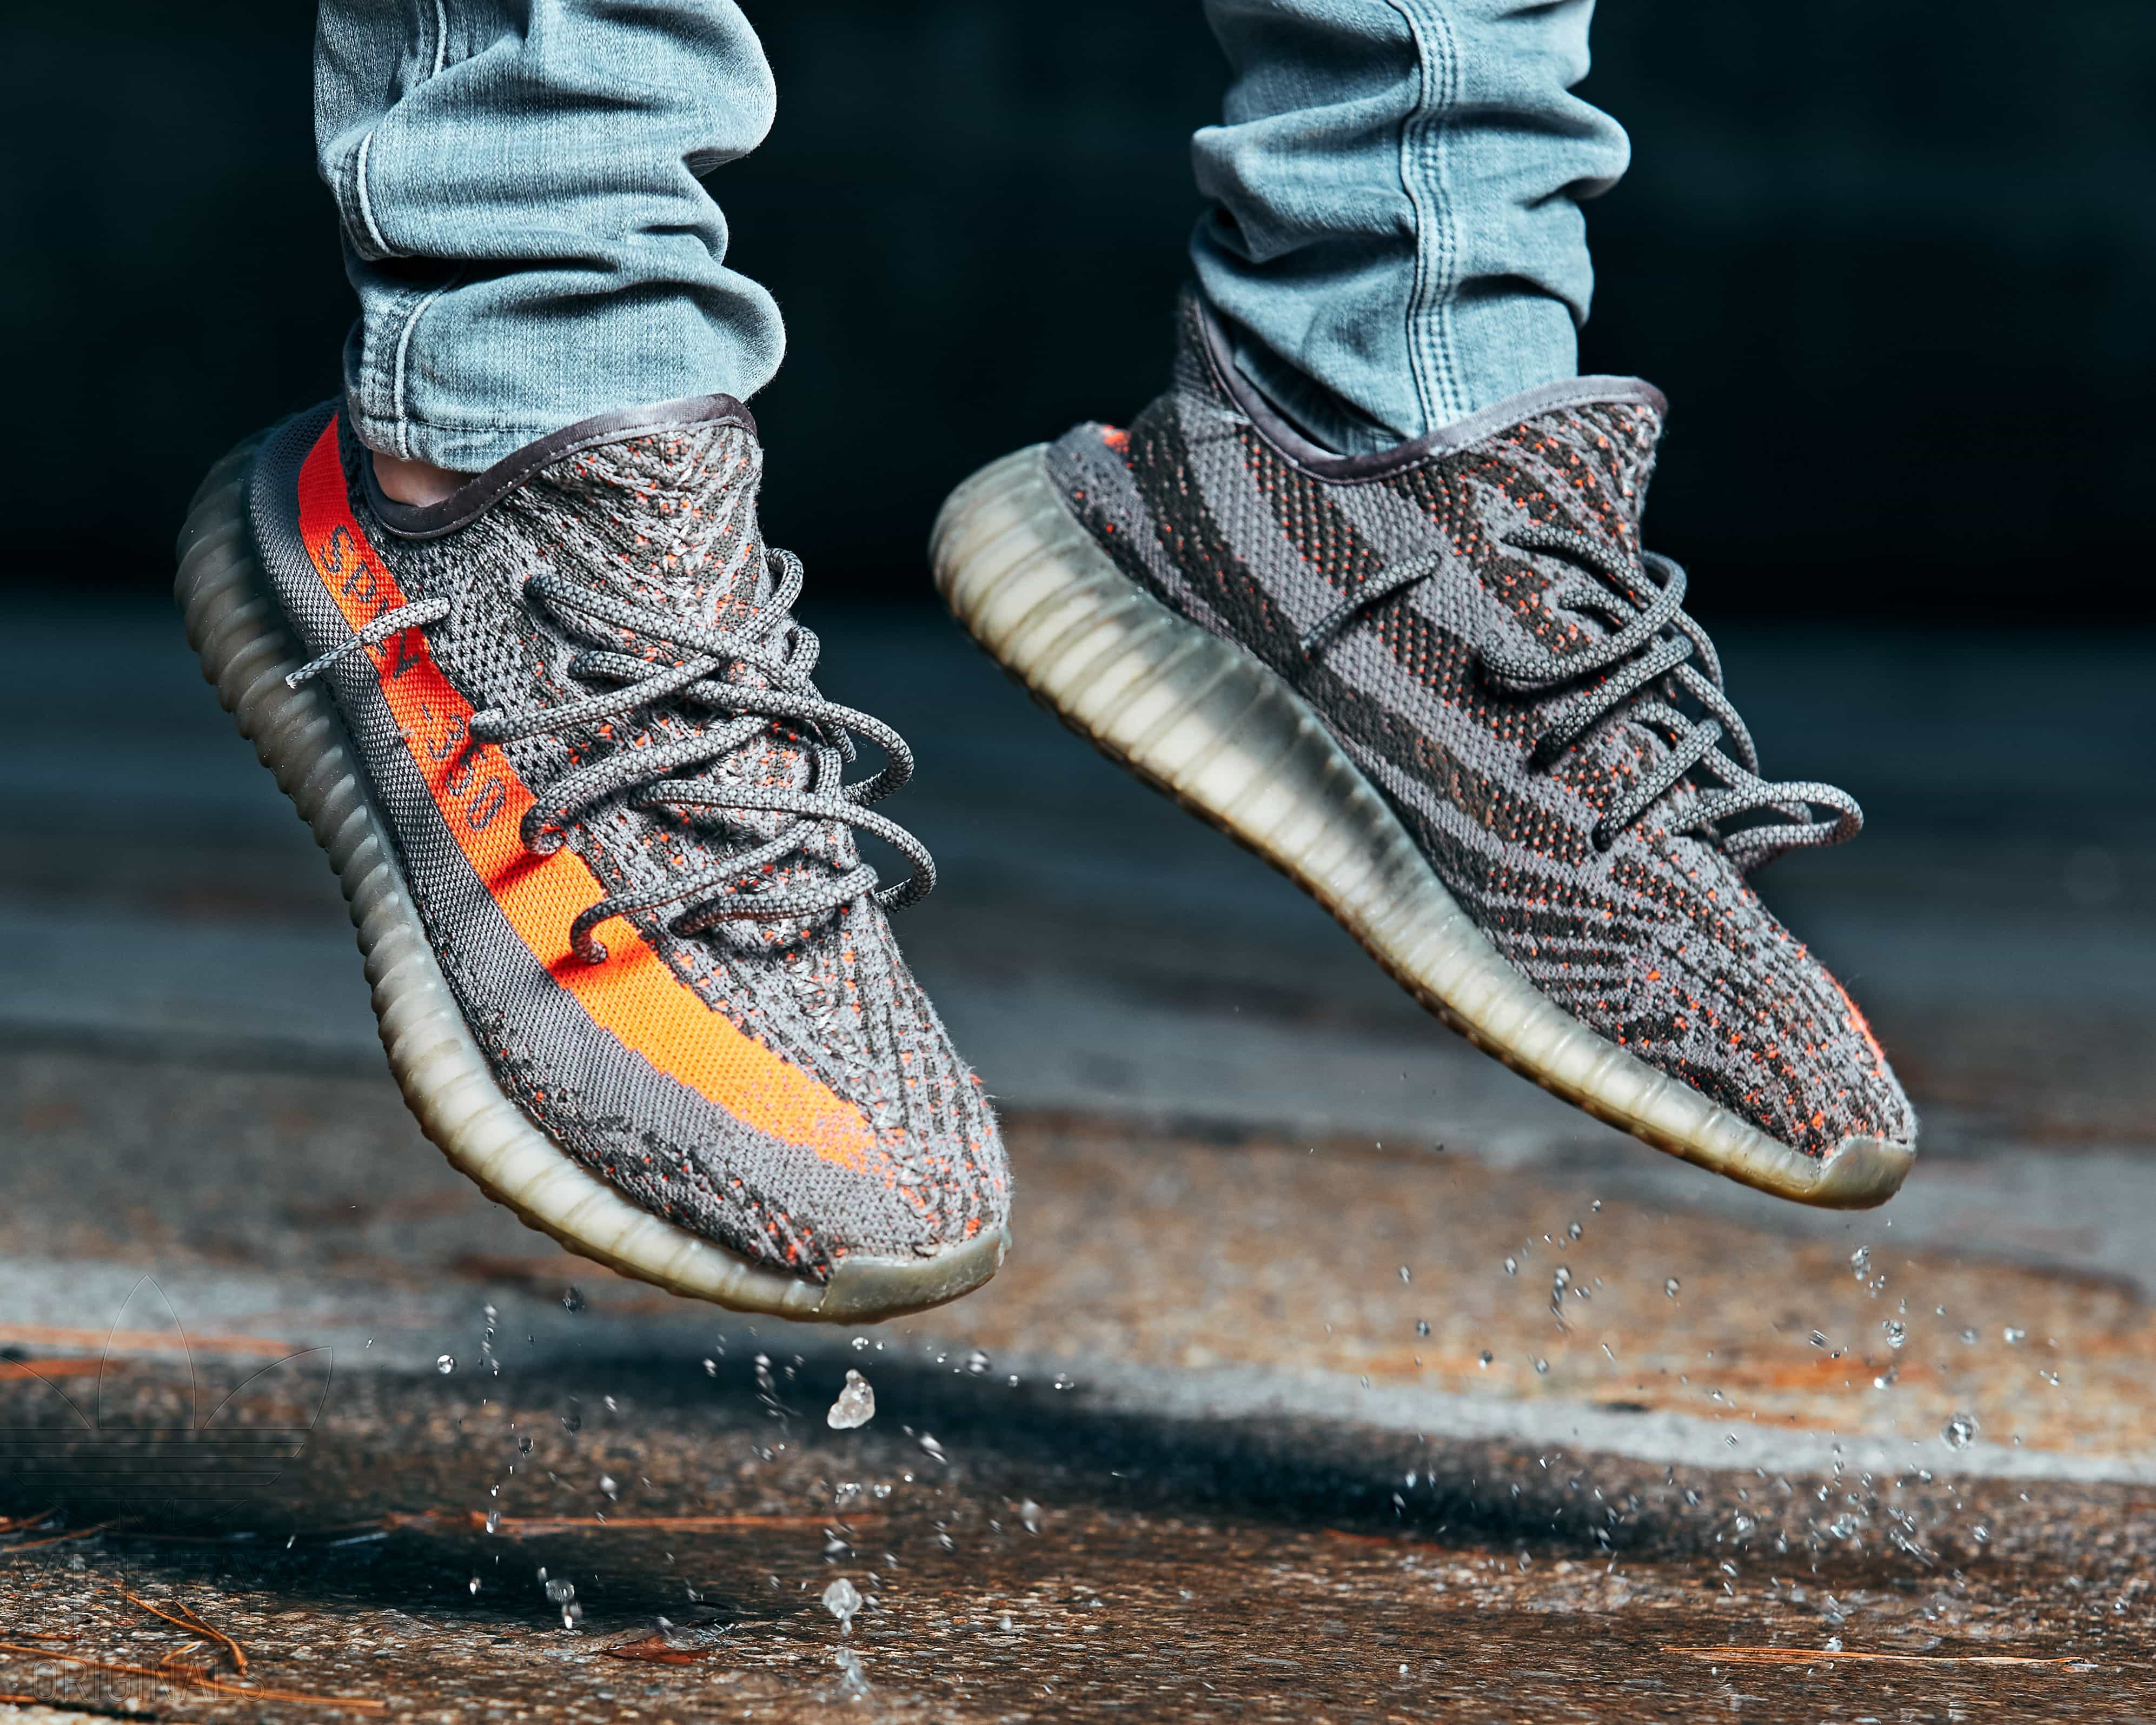 Most Expensive Sneakers of 2019: Year's Most Valuable